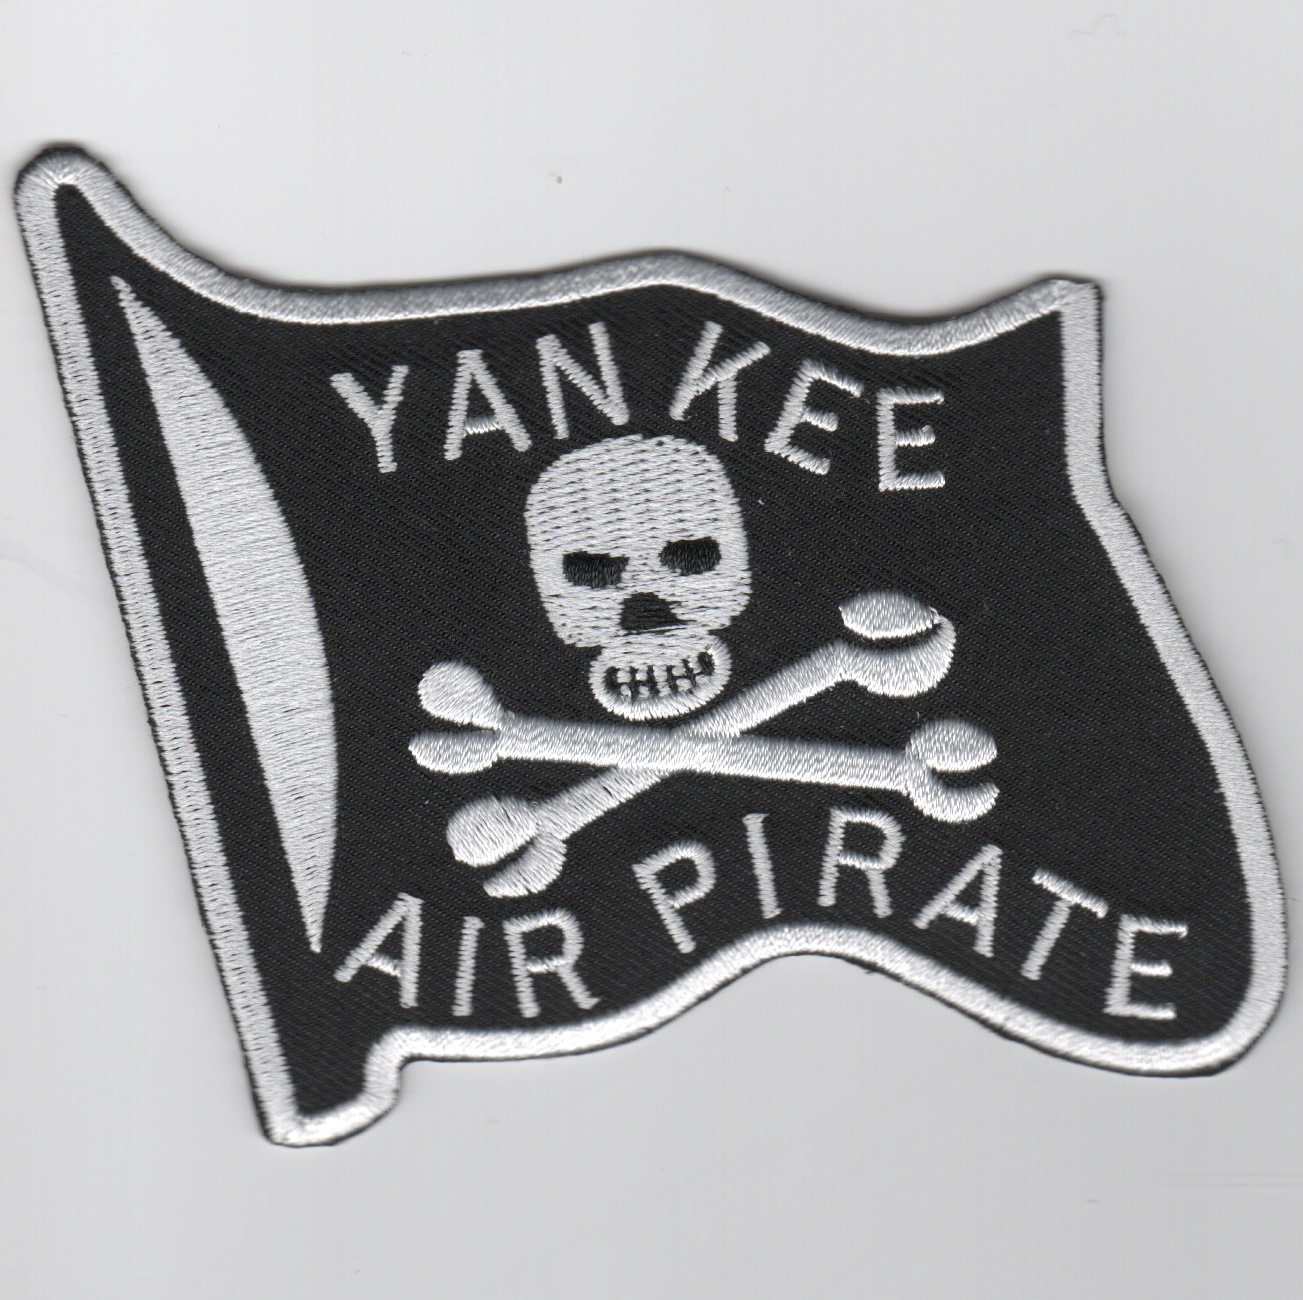 Yankee Air Pirate (Black/Lrg/V)